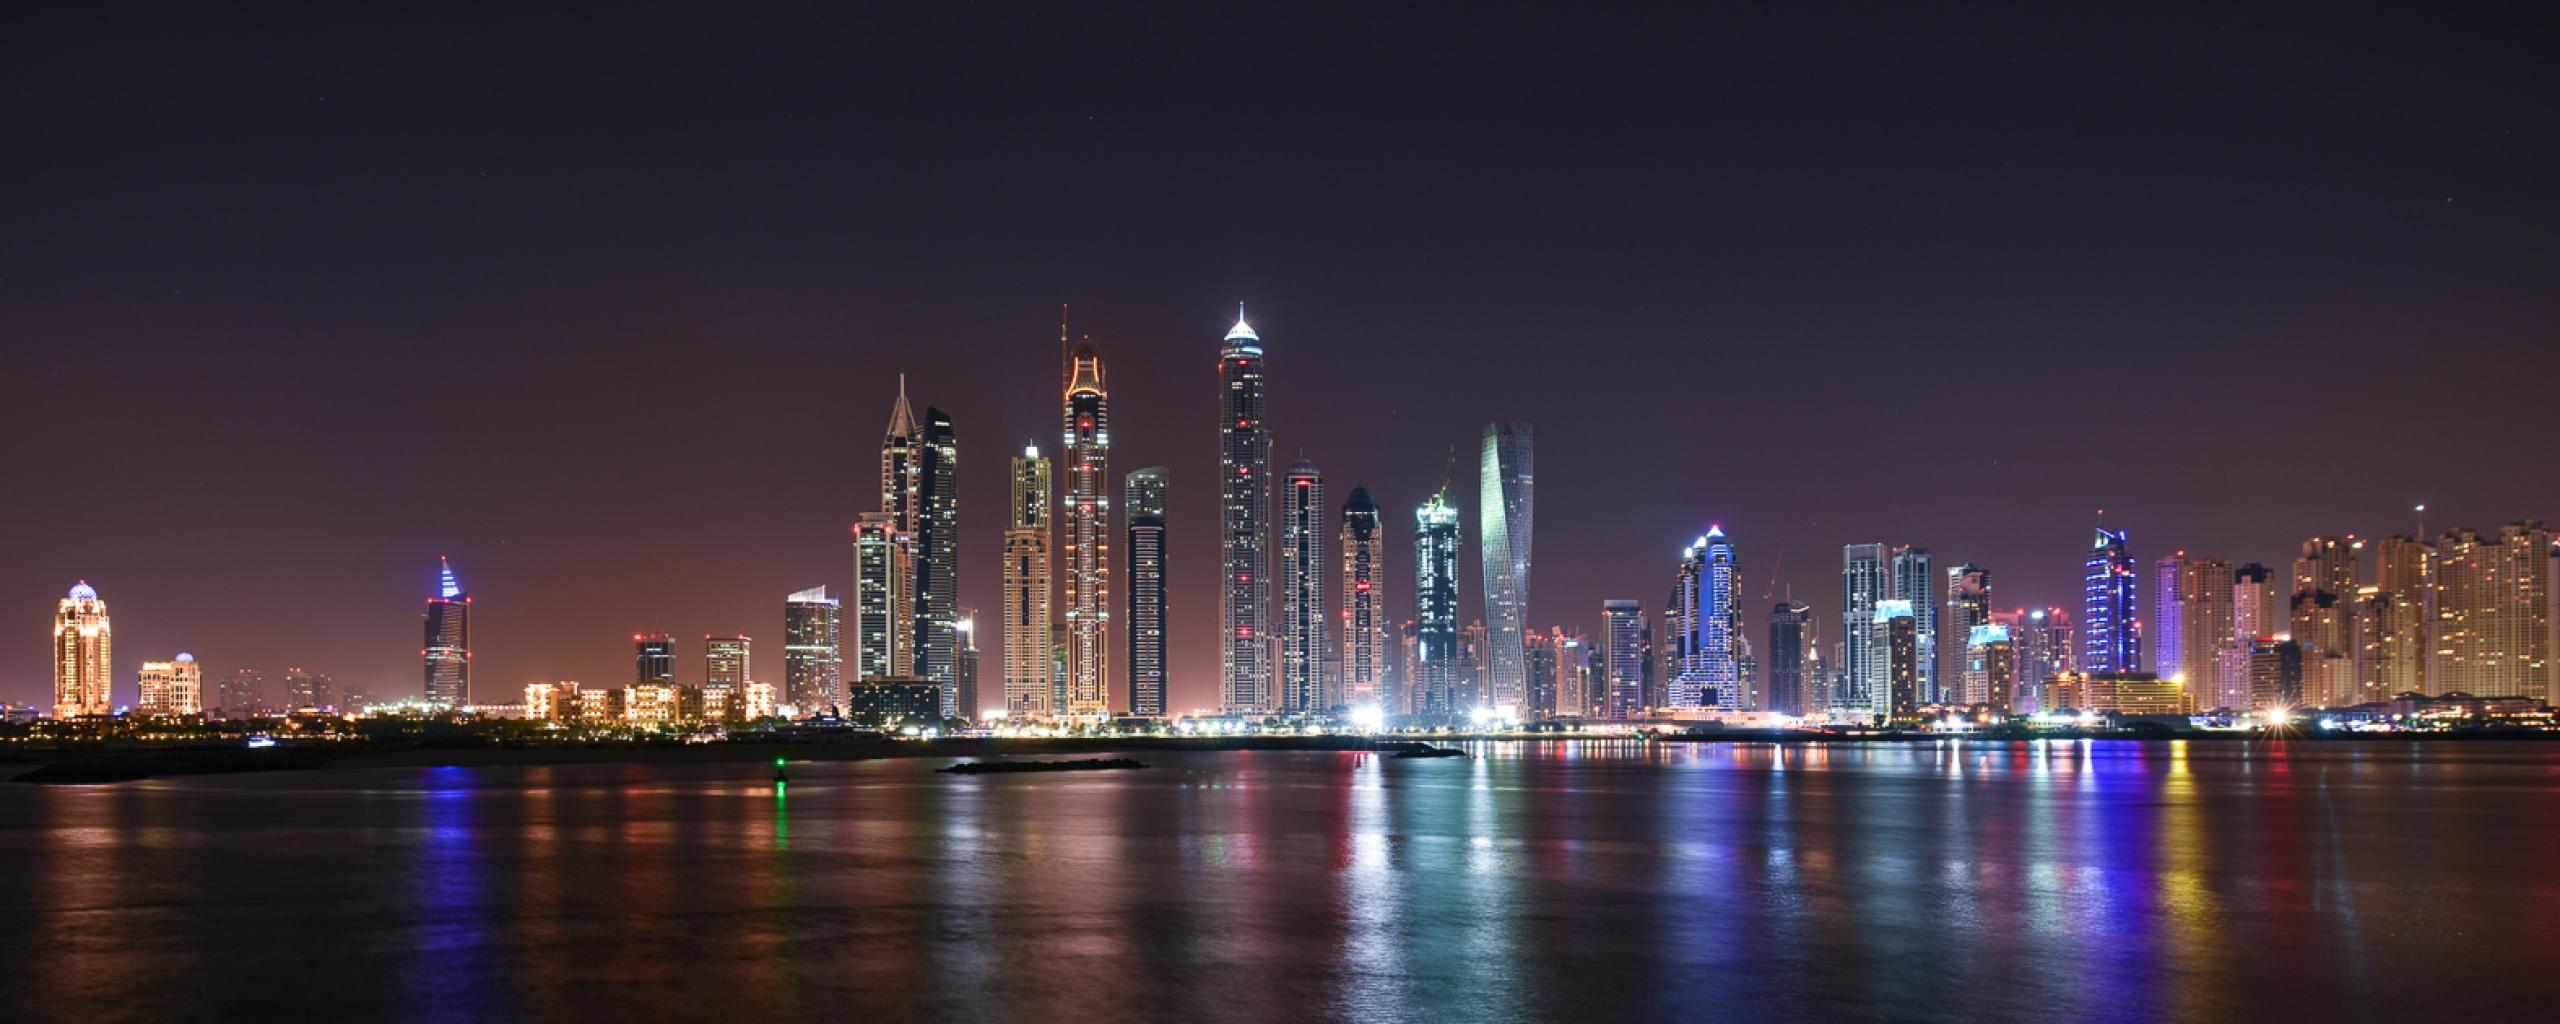 Dubai - City of Highlights